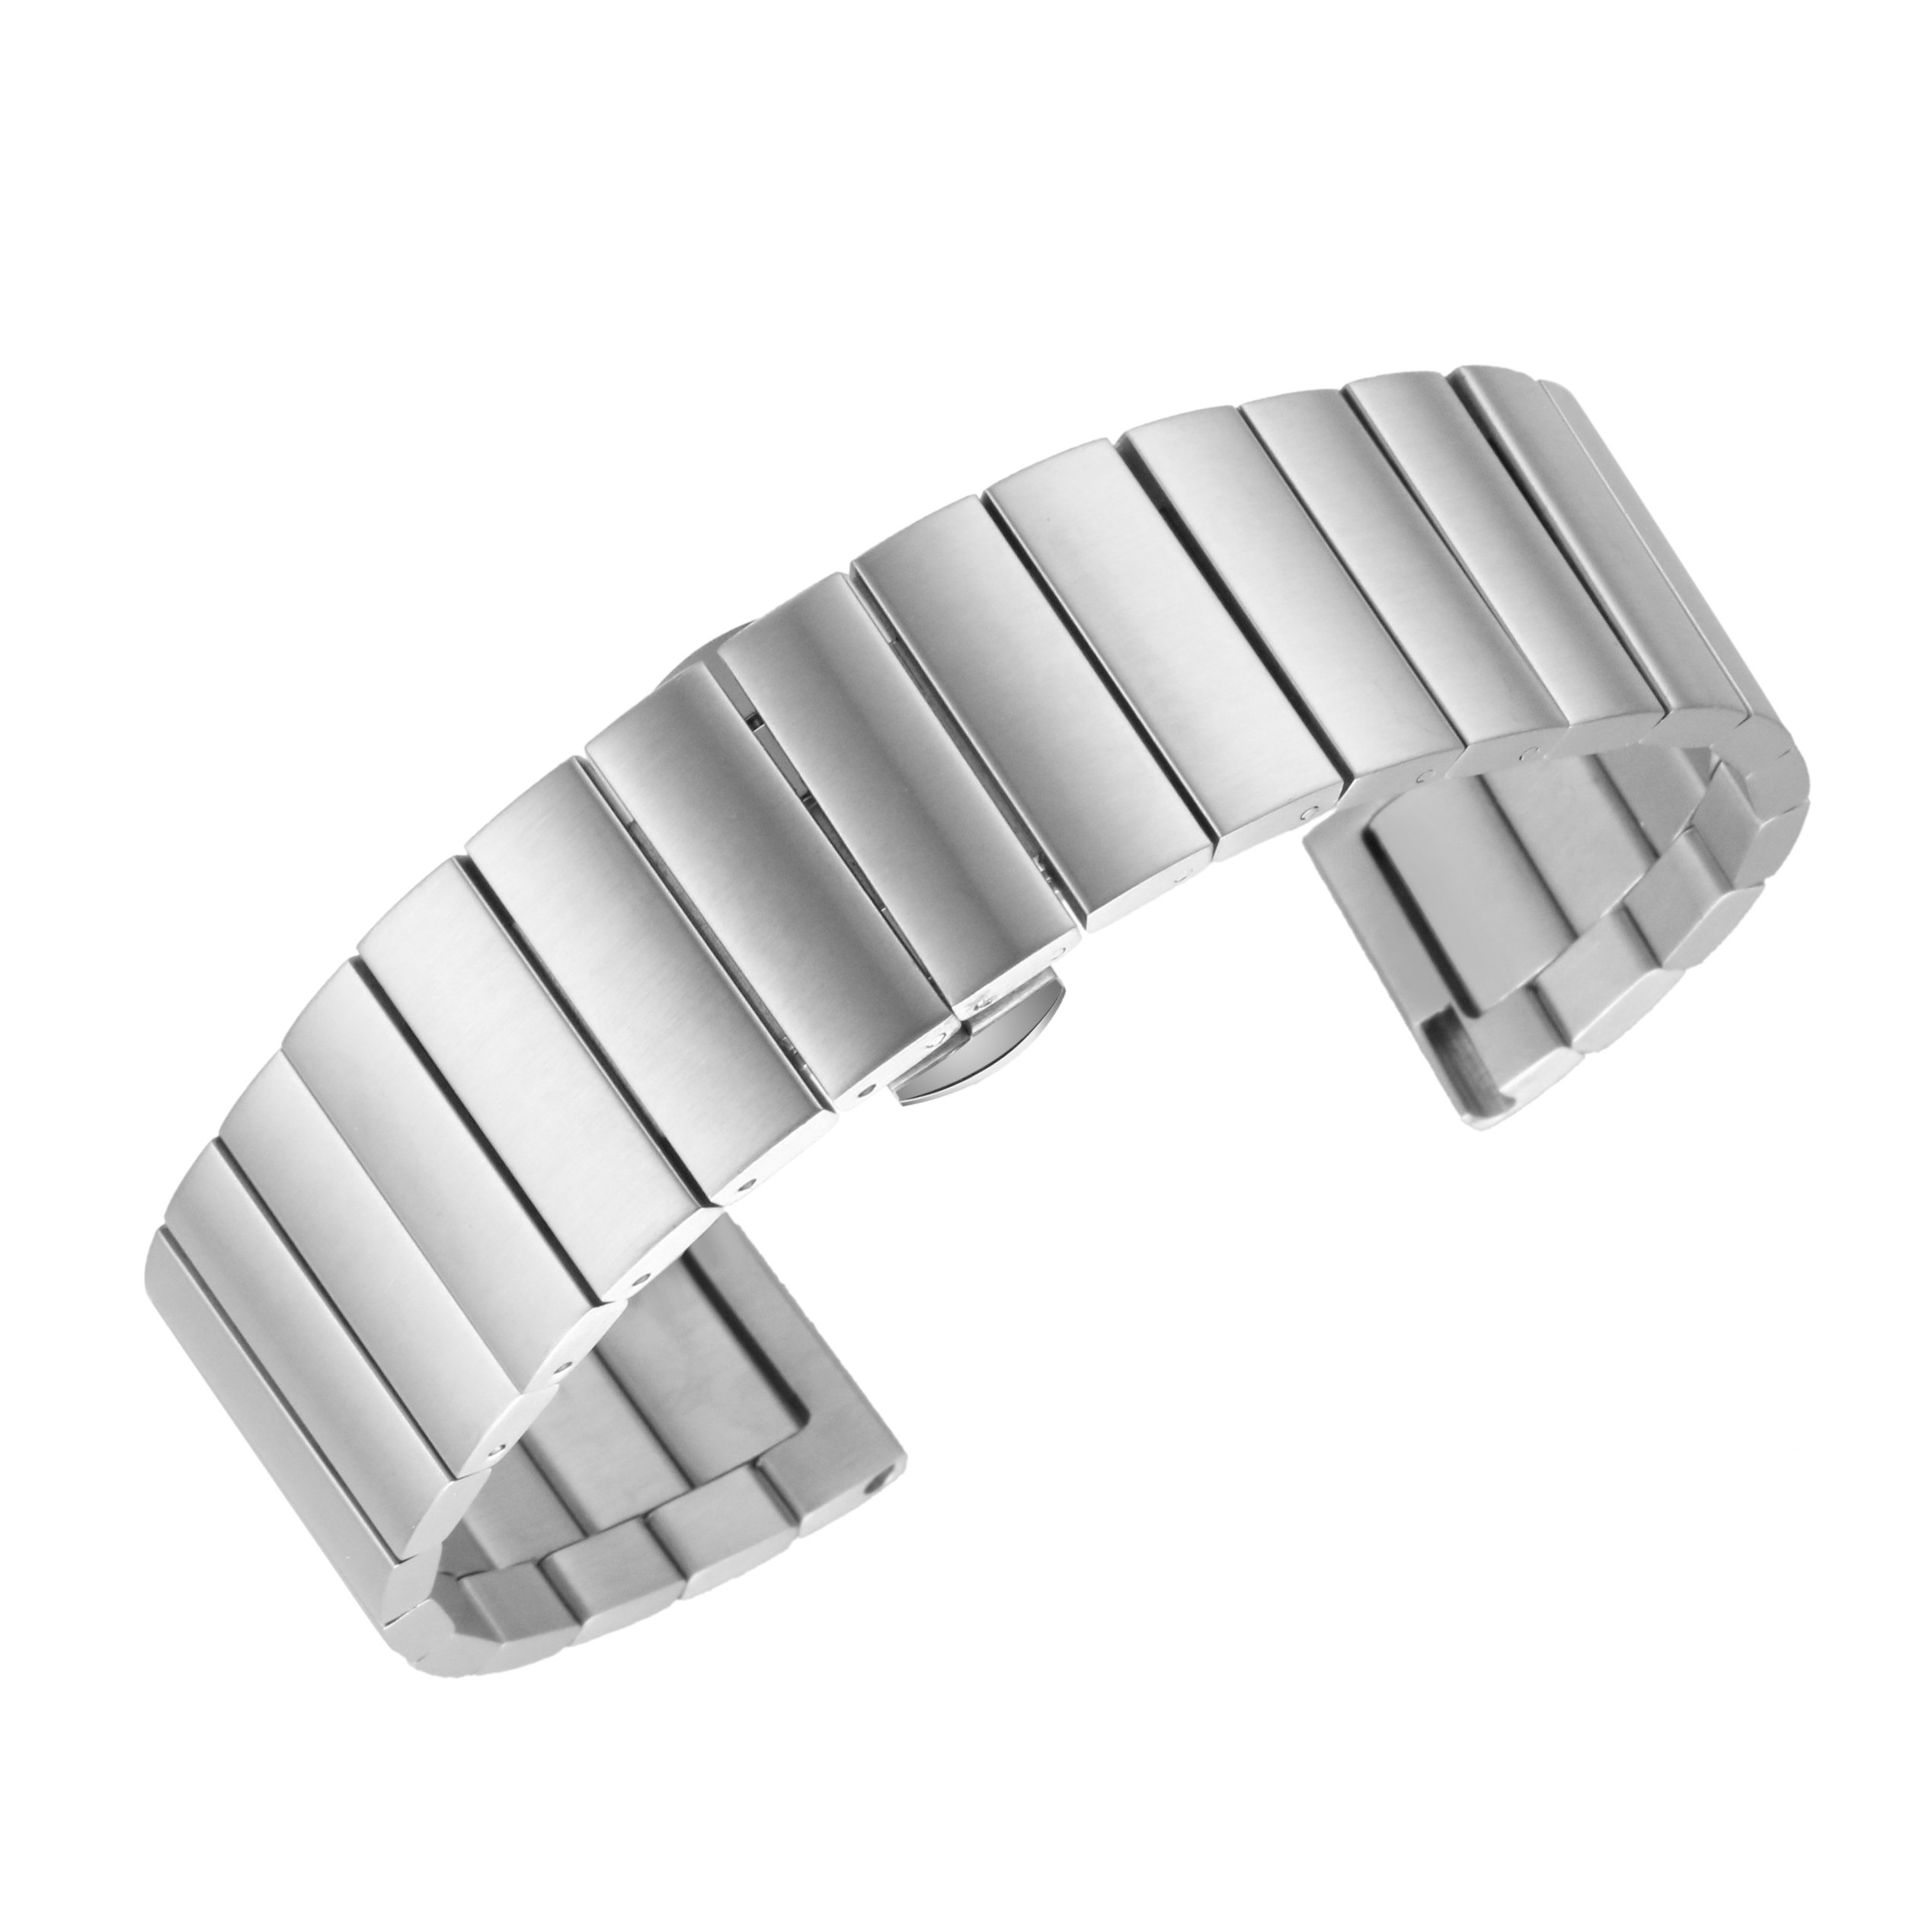 24mm Decent Steel Wristband for Men's Premium Watch Superior Watch Strap with Removable Links in Silver